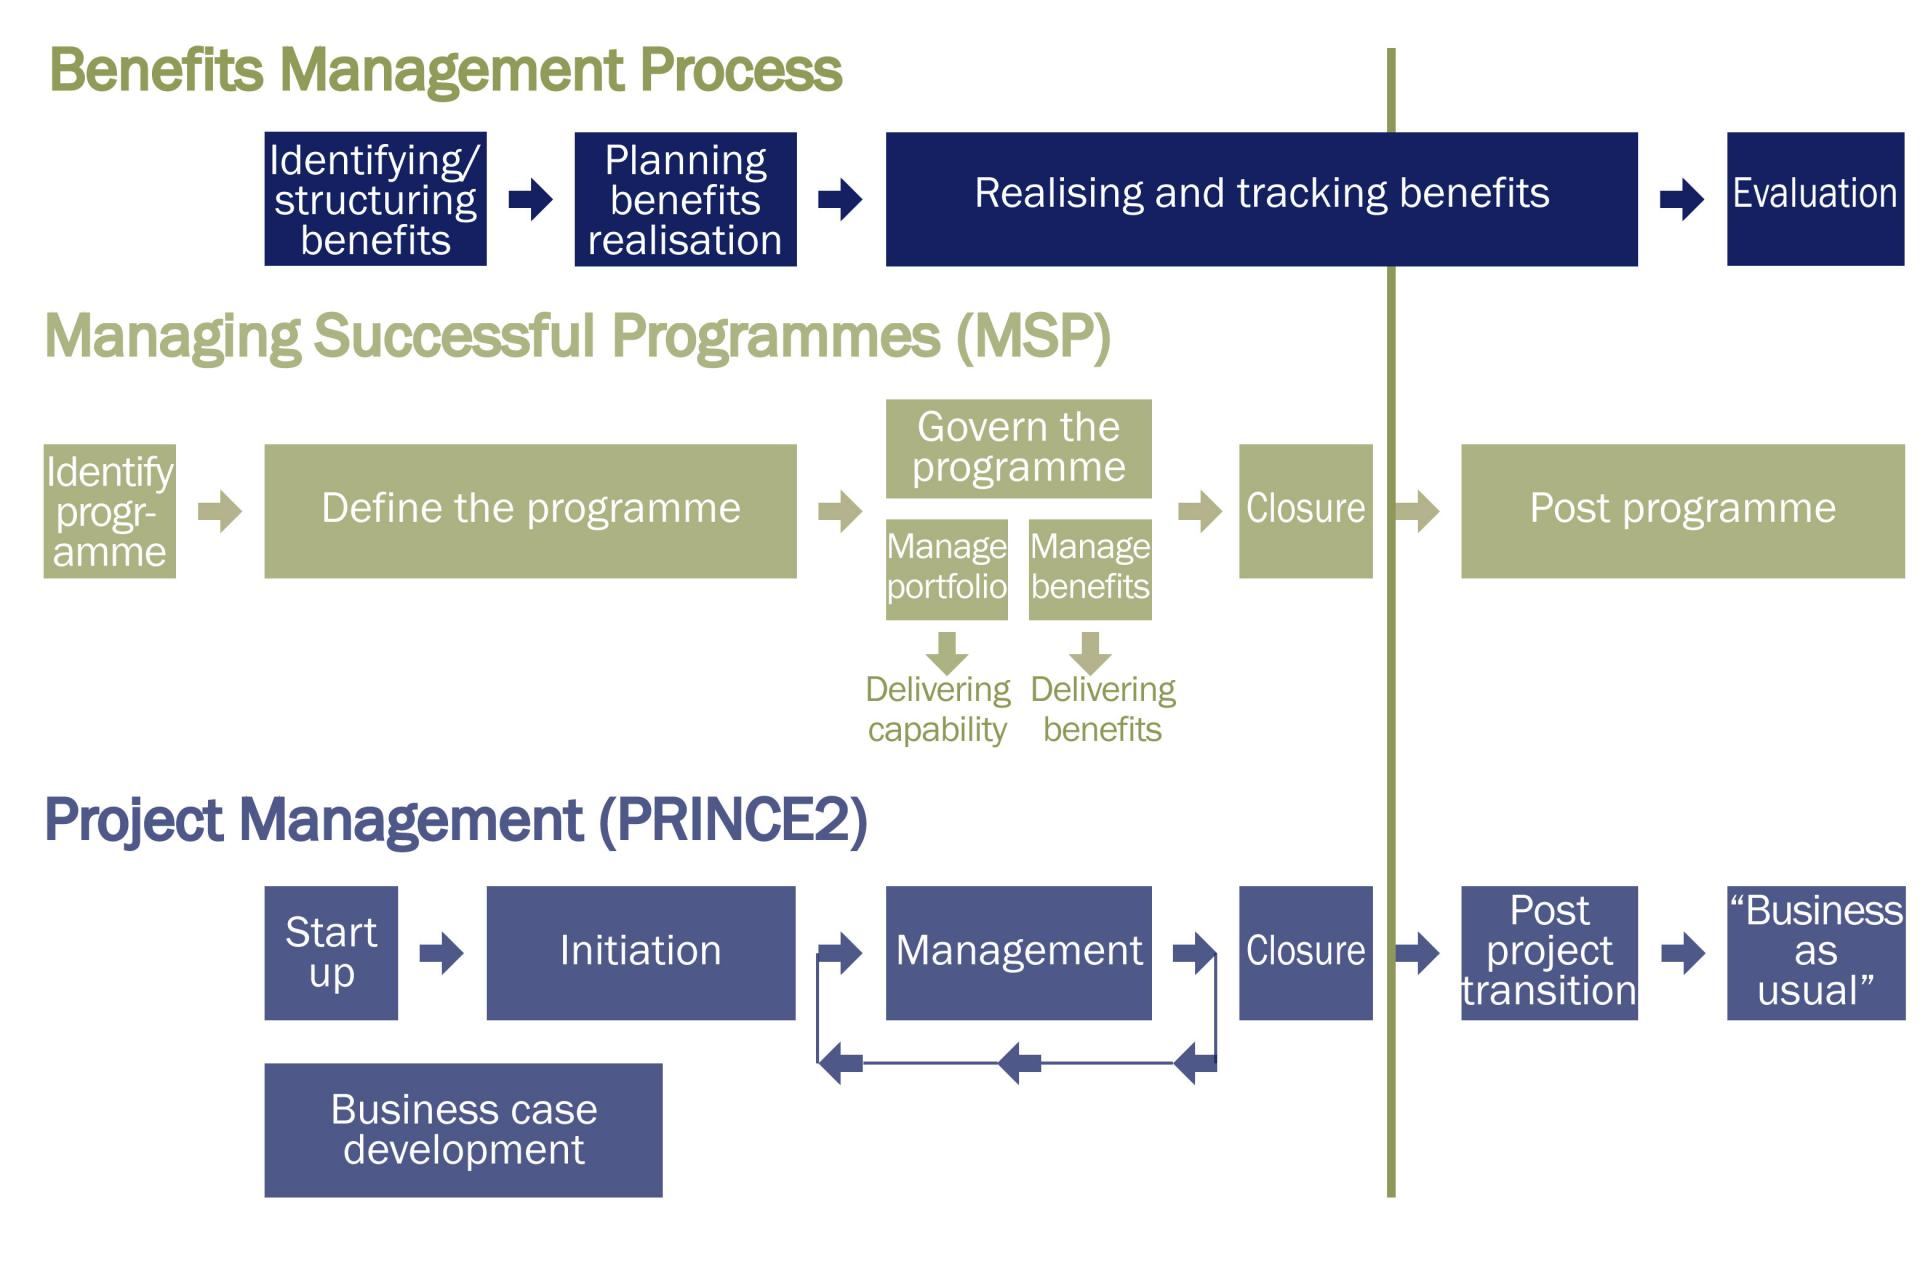 Common questions and answers on benefits management department benefits management diagram comparing prince2 and managing successful programmes pooptronica